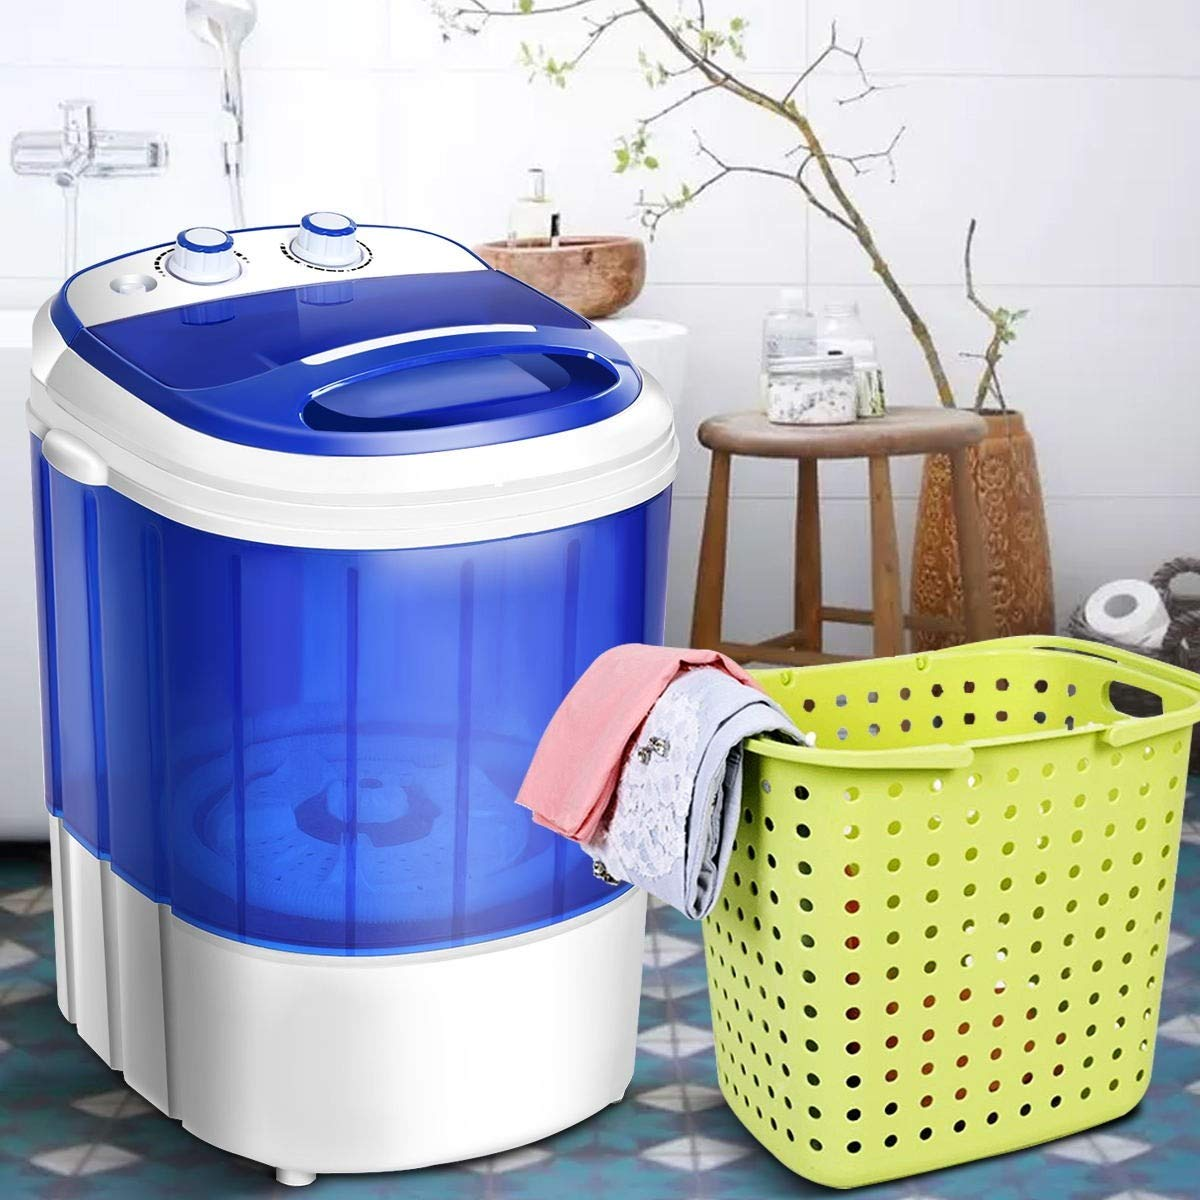 MD Group Mini Portable Washer Washing Machine by MD Group (Image #4)